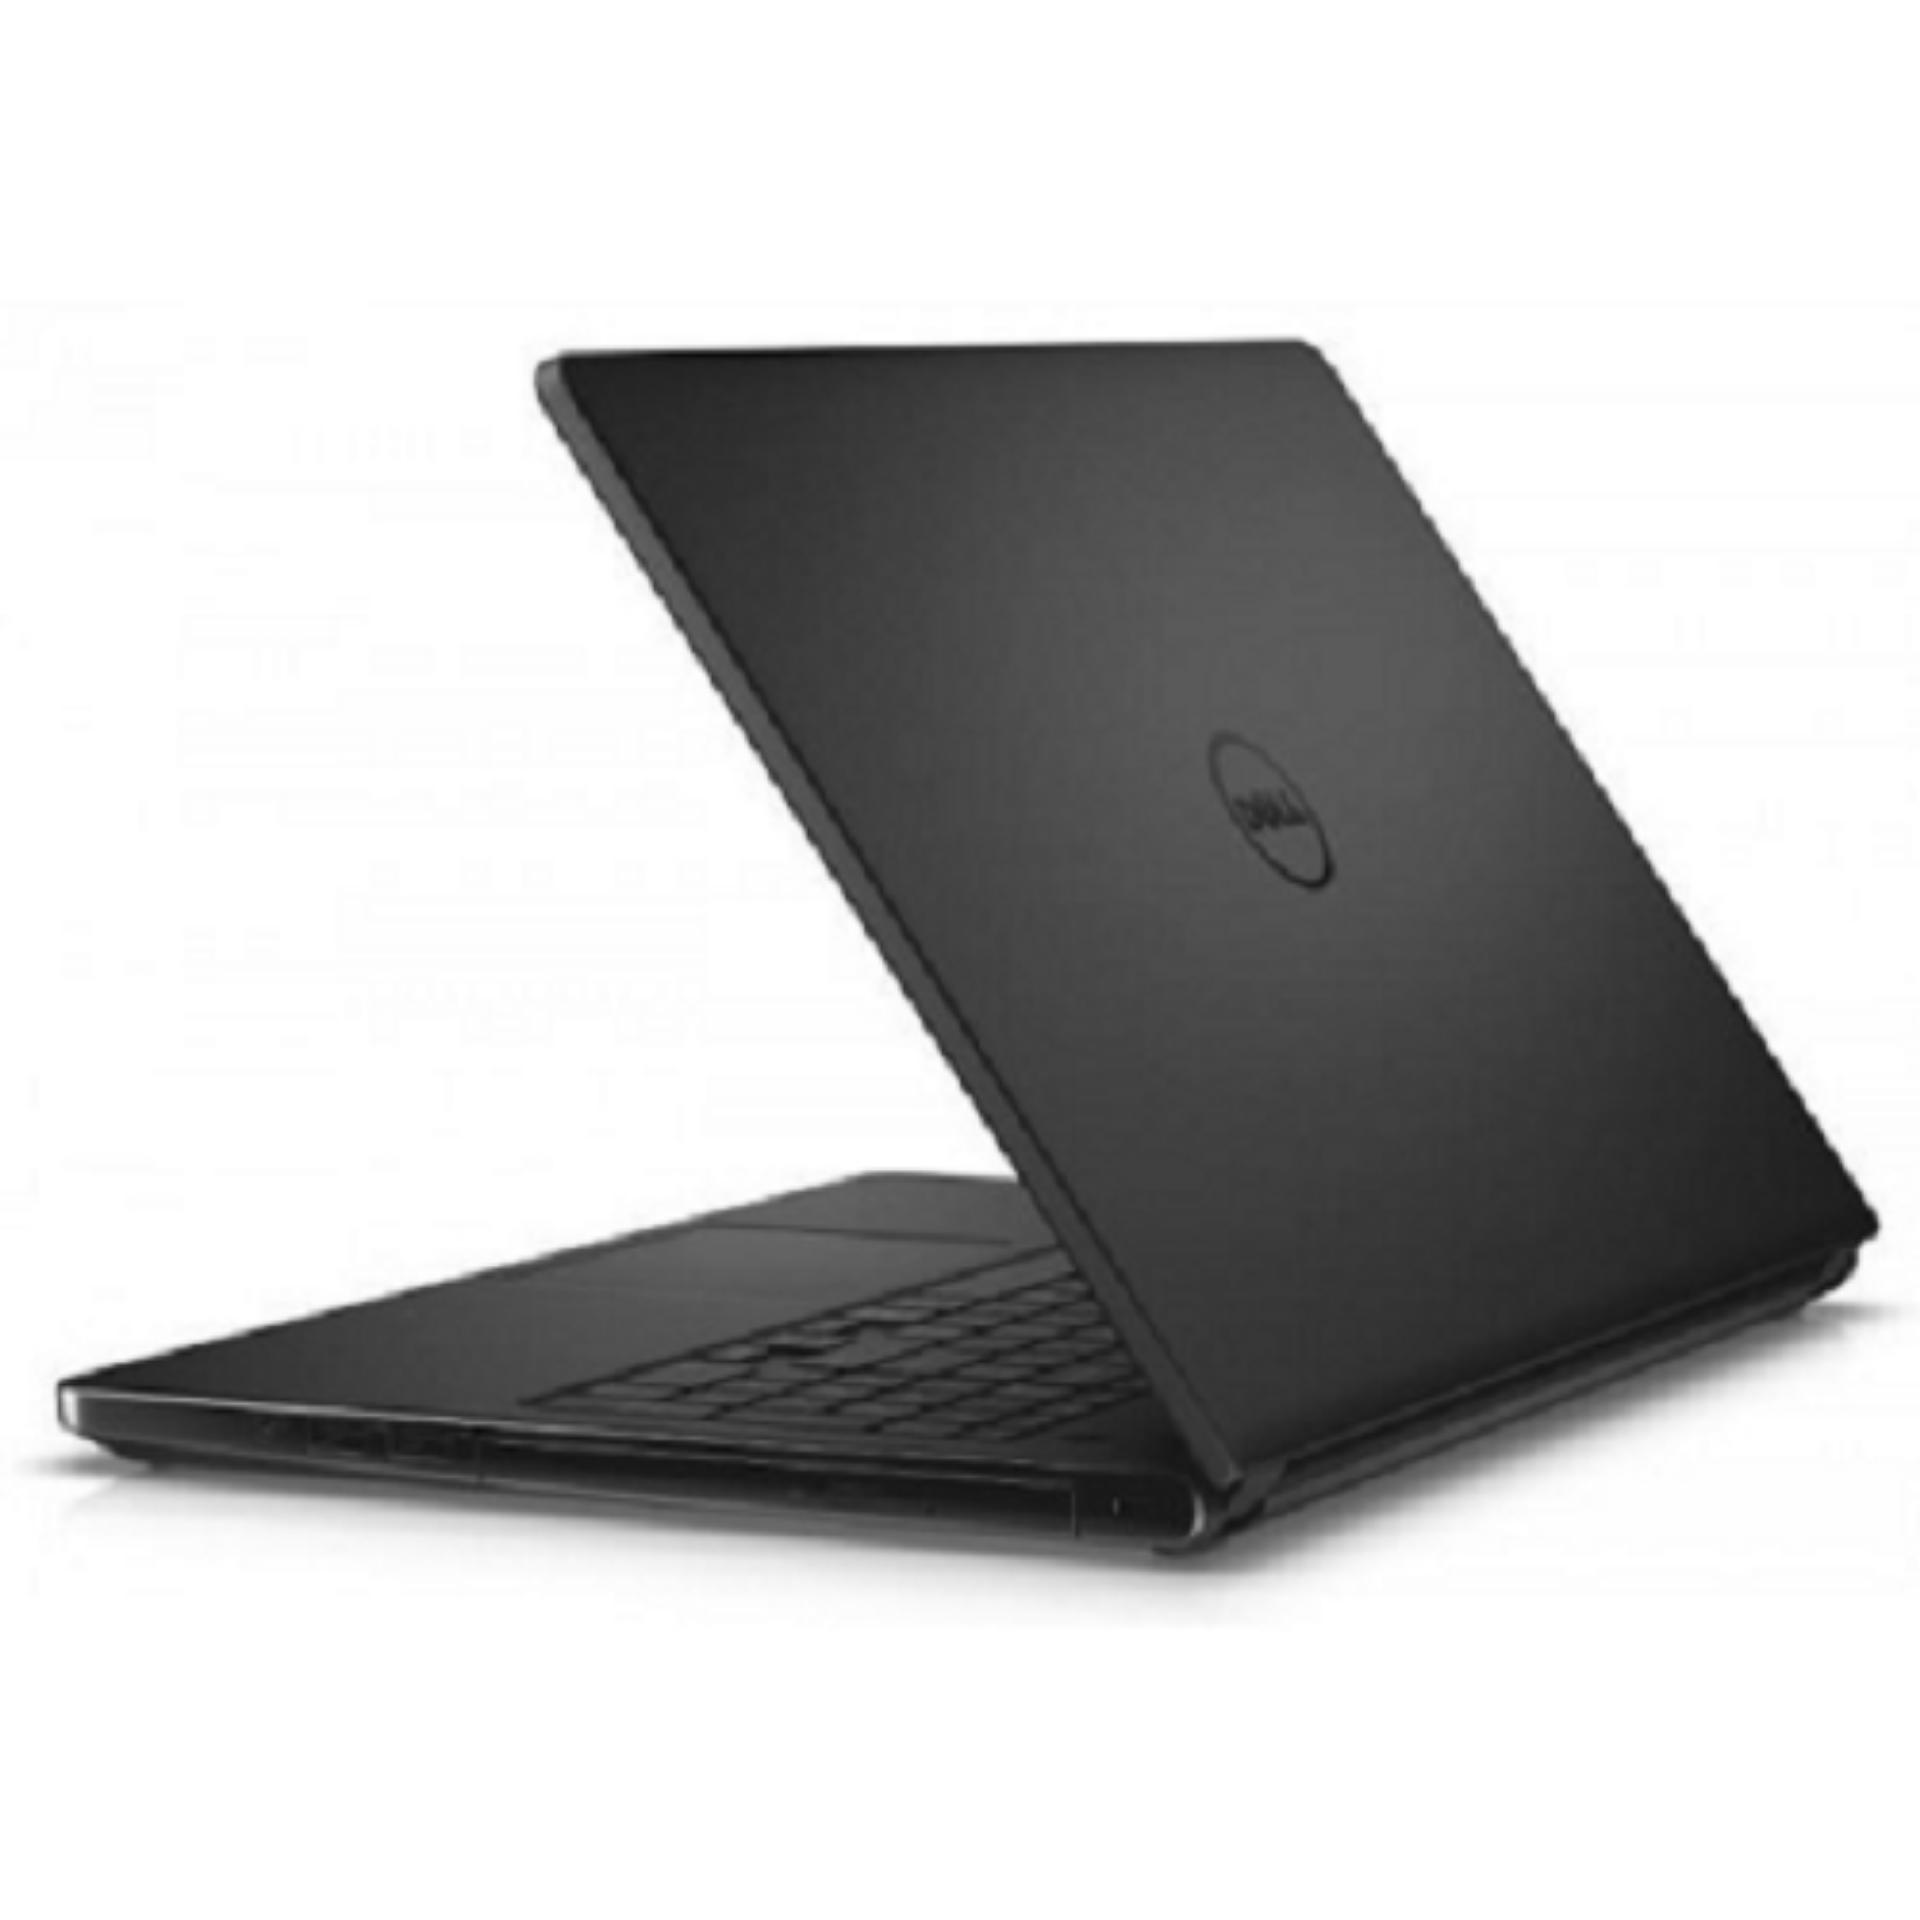 New INSPIRON 14 3000 SERIES 3467 6th Gen i3 6006U 4GB RAM 500GB AMD Radeon R5 M430 Graphics with 2GB DDR3 14 inch display Windows10H LCD Back Cover for Black